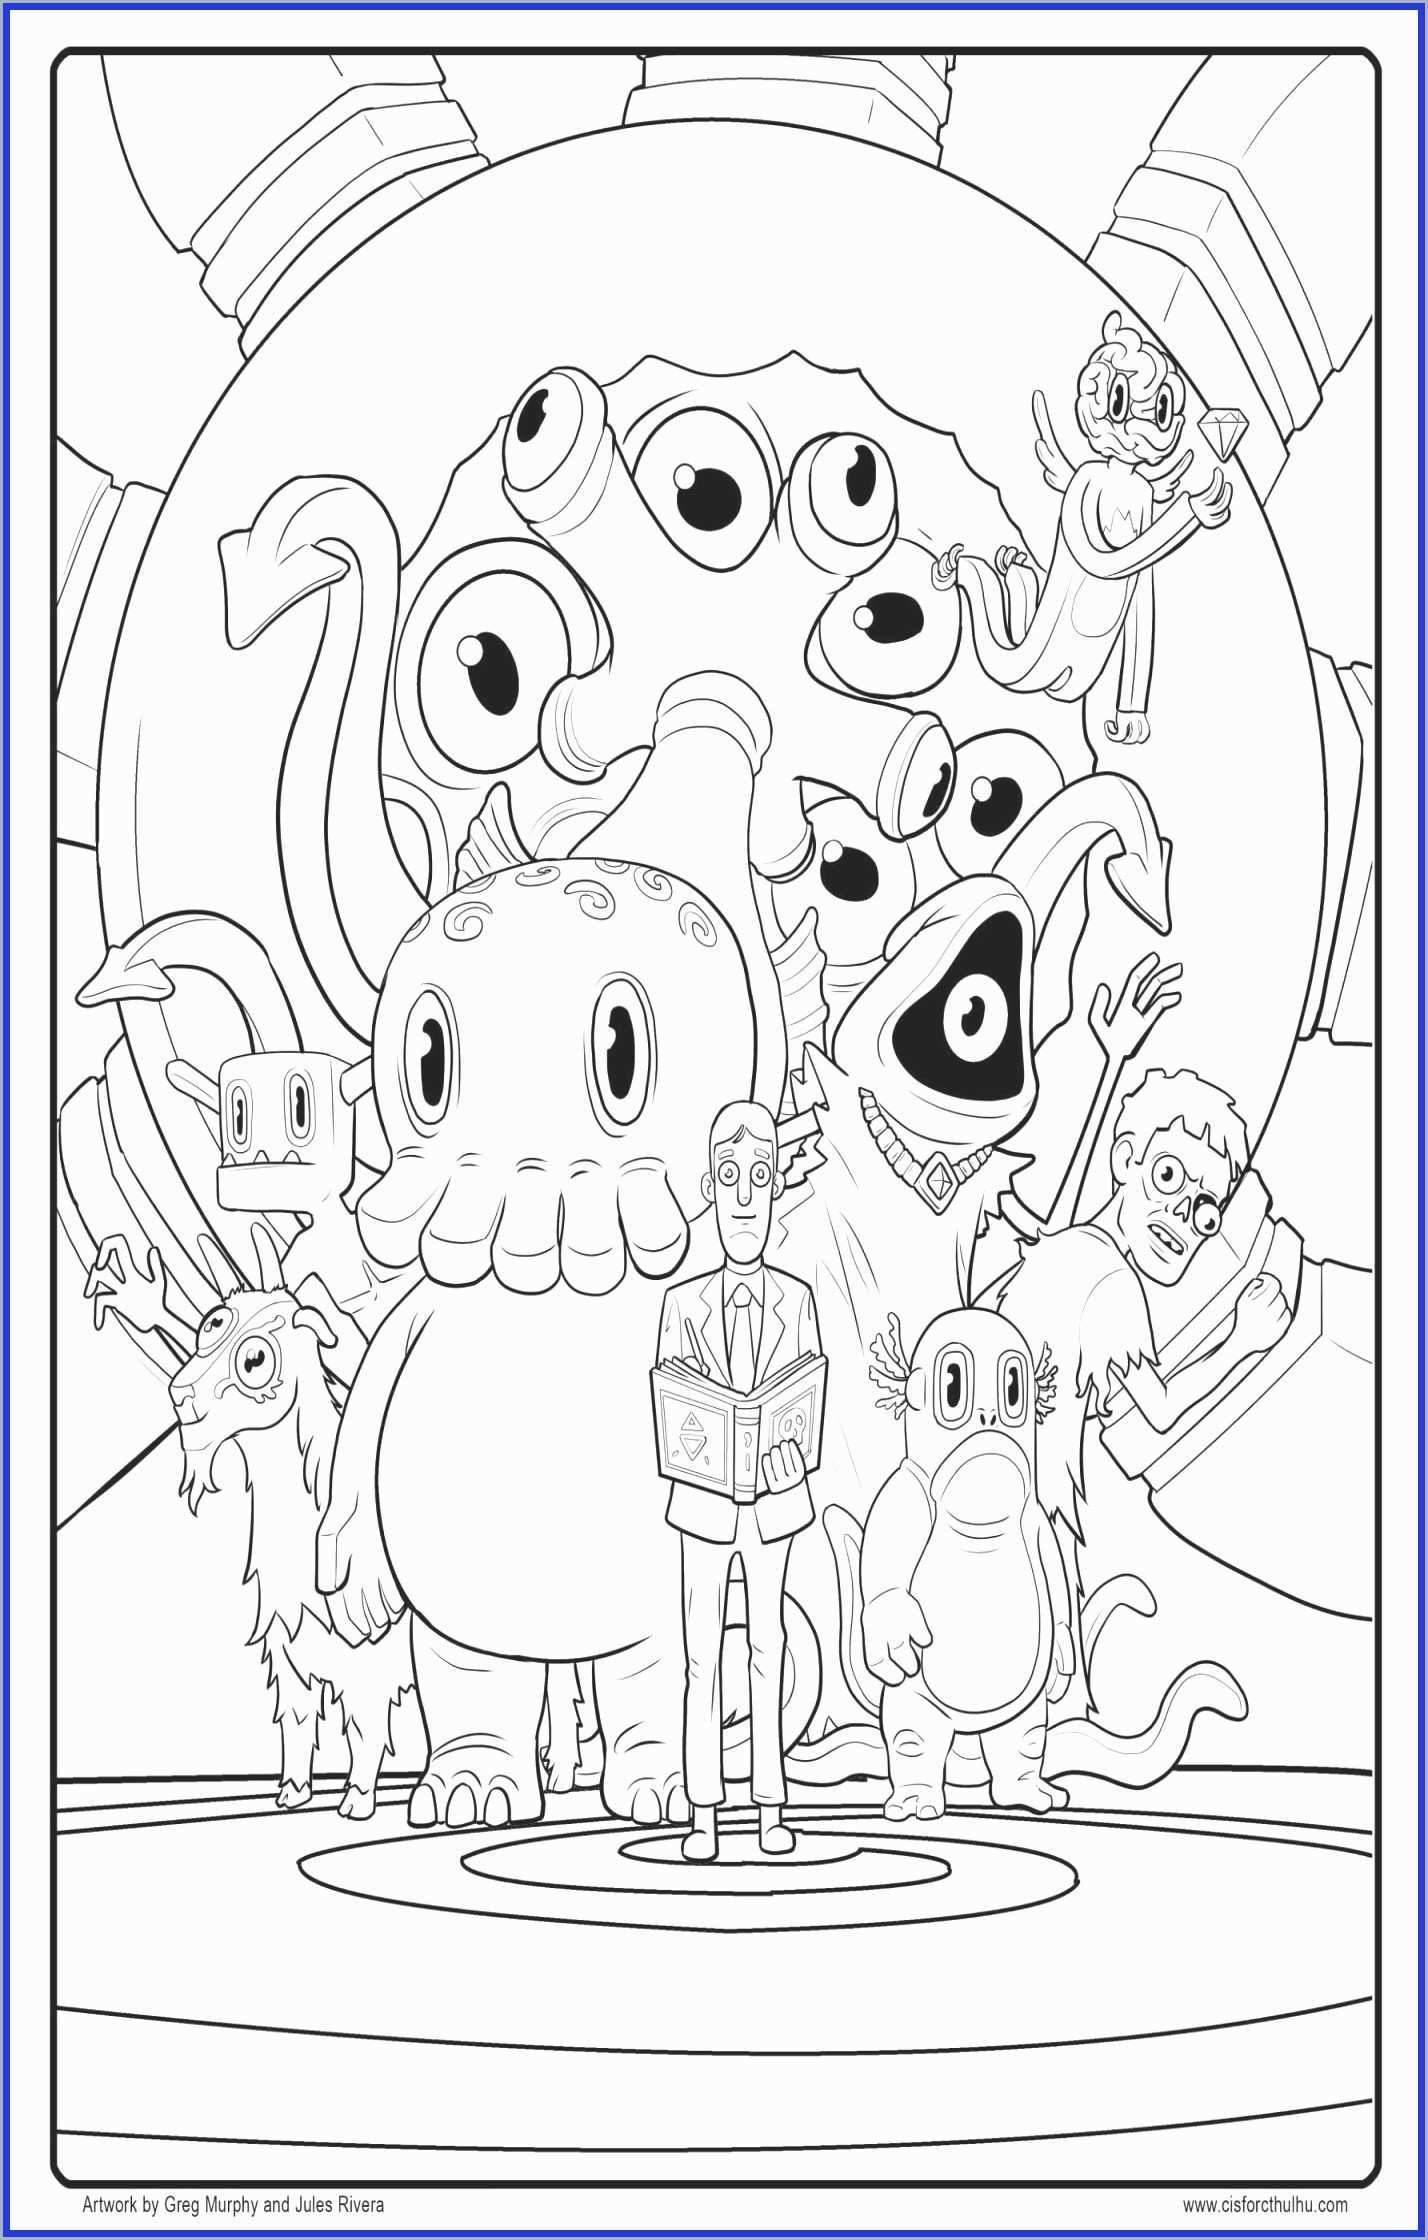 Gingerbread Coloring Pages Blank Lego Man Coloring Page Fresh Gingerbread Coloring Pages Lovely